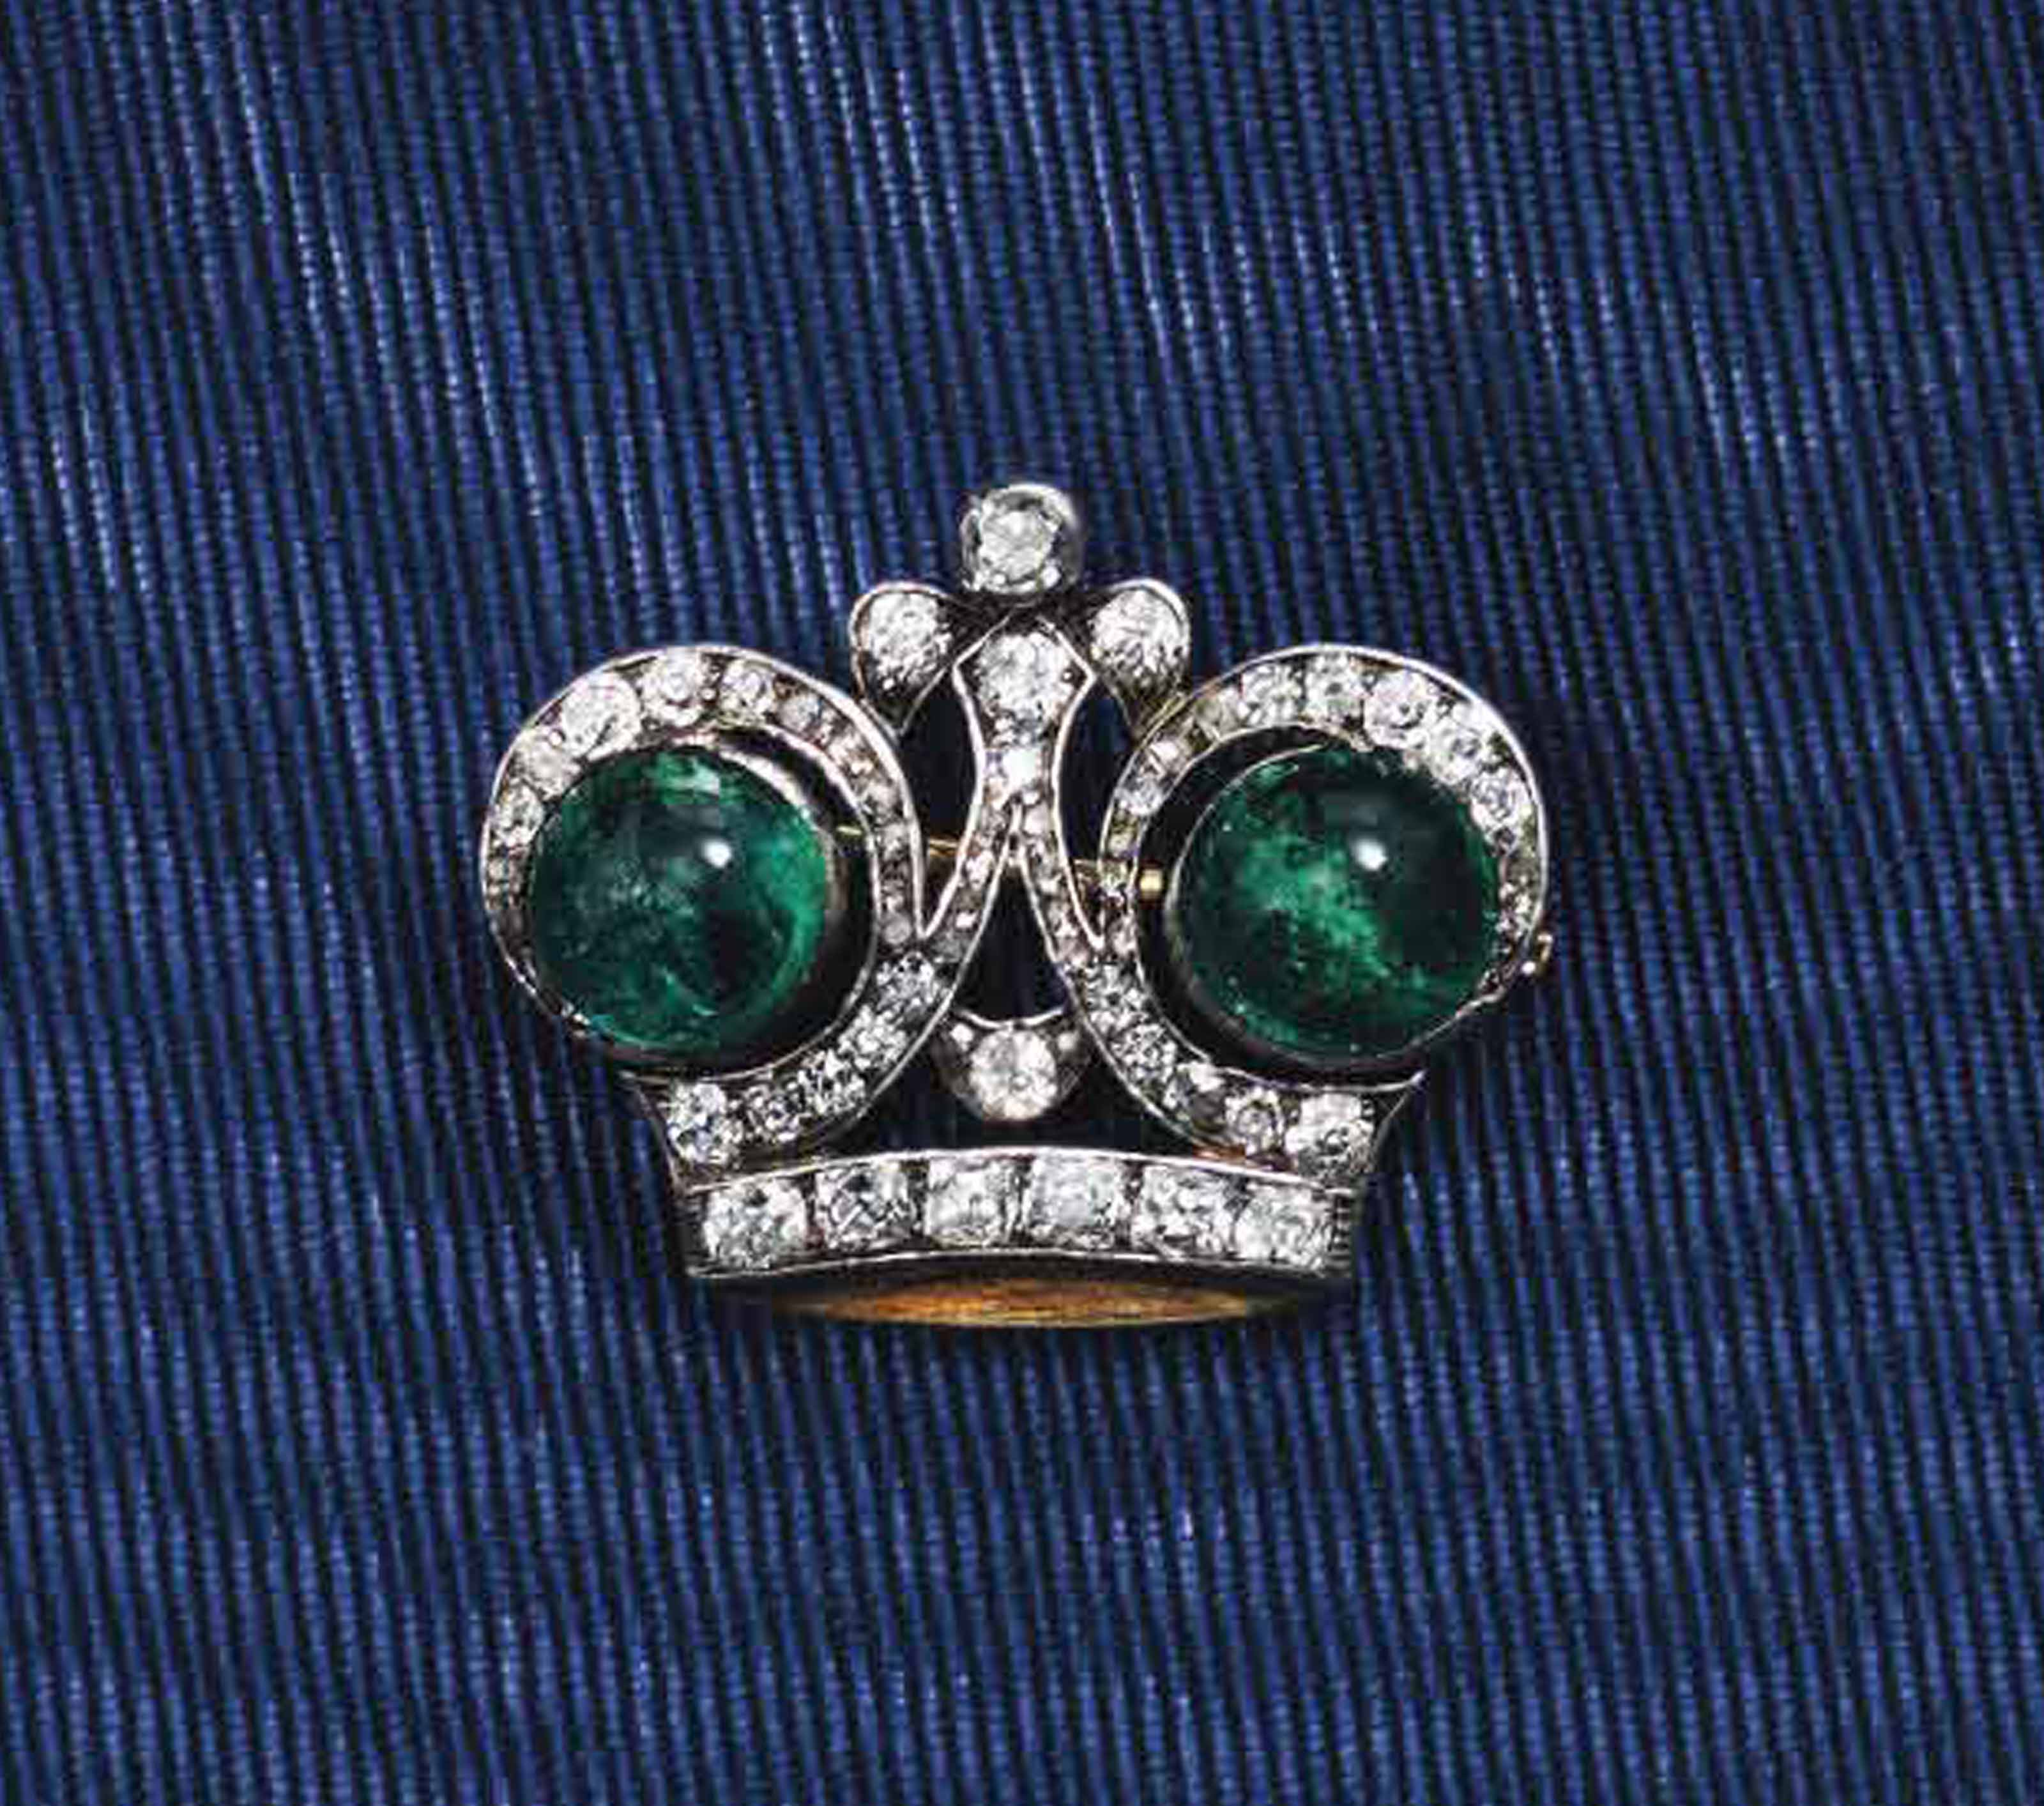 A GOLD AND SILVER-MOUNTED DIAMOND AND EMERALD IMPERIAL PRESENTATION BROOCH